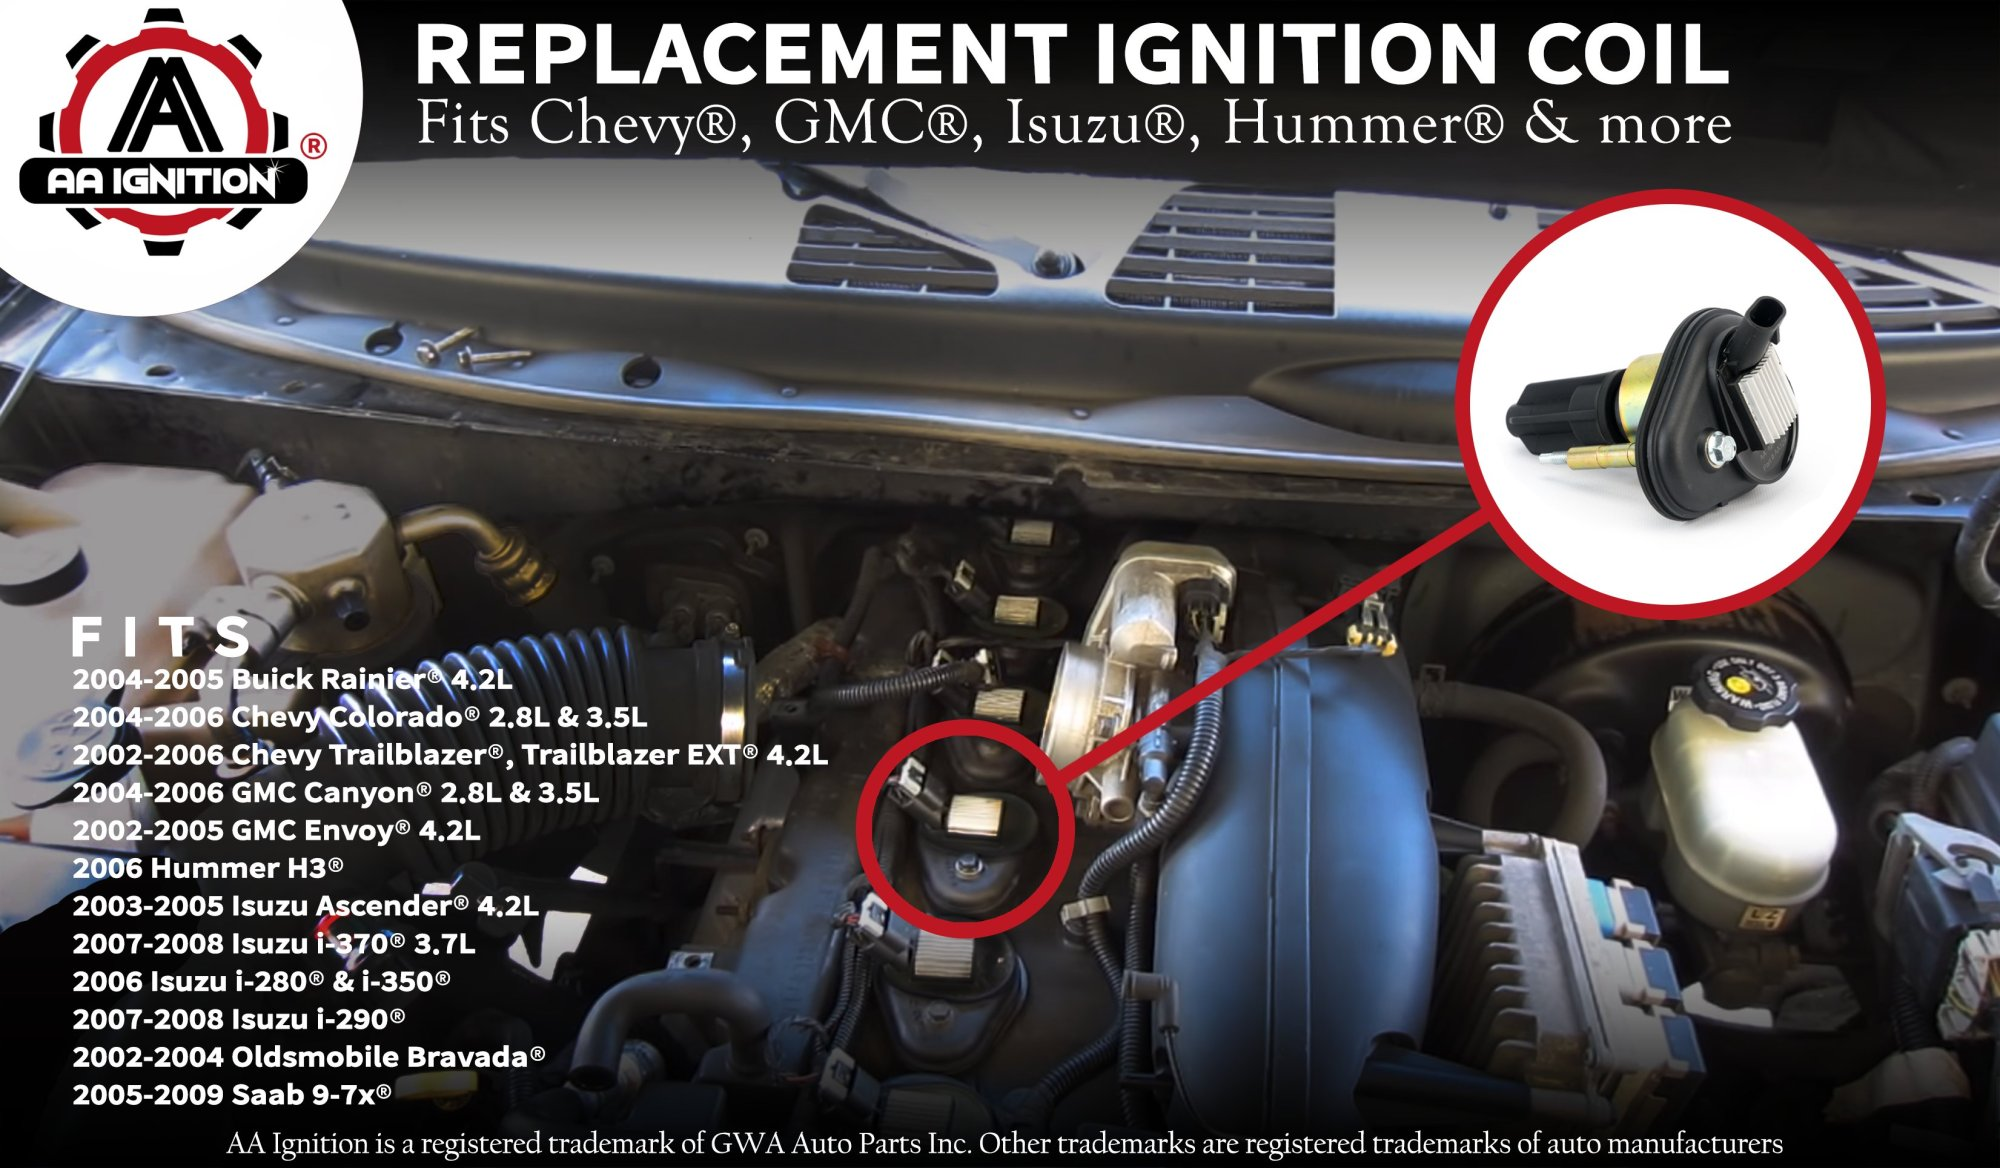 hight resolution of ignition coil pack replaces 12568062 19300921 for a chevy trailblazer gmc envoy 2002 2003 2004 2005 chevrolet colorado 2004 2006